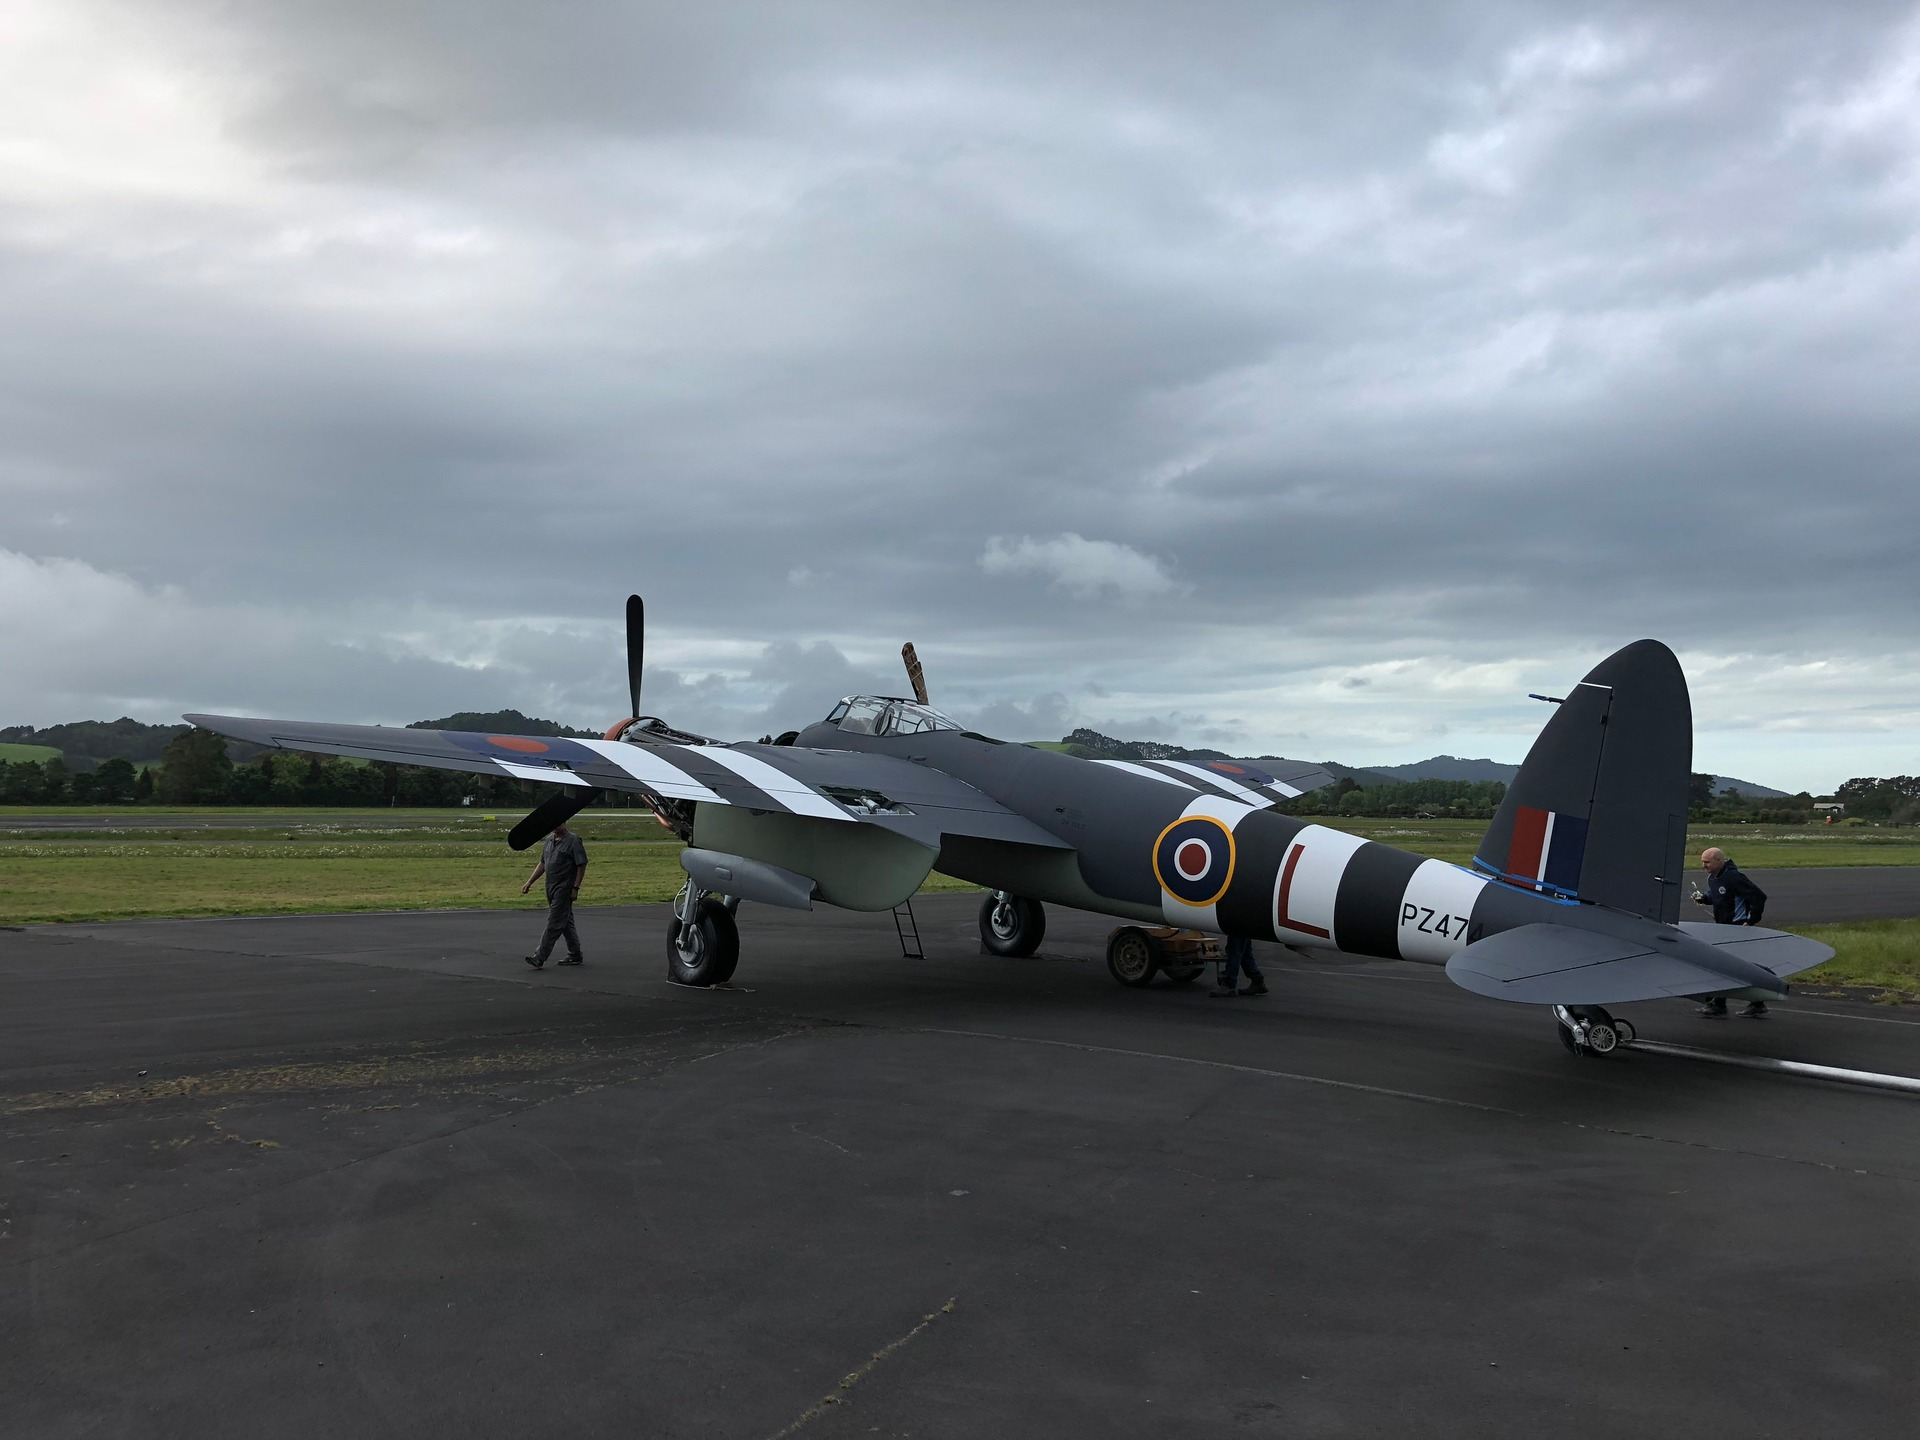 WWII de Havilland Mosquito restored in Auckland for Armistice Day air show